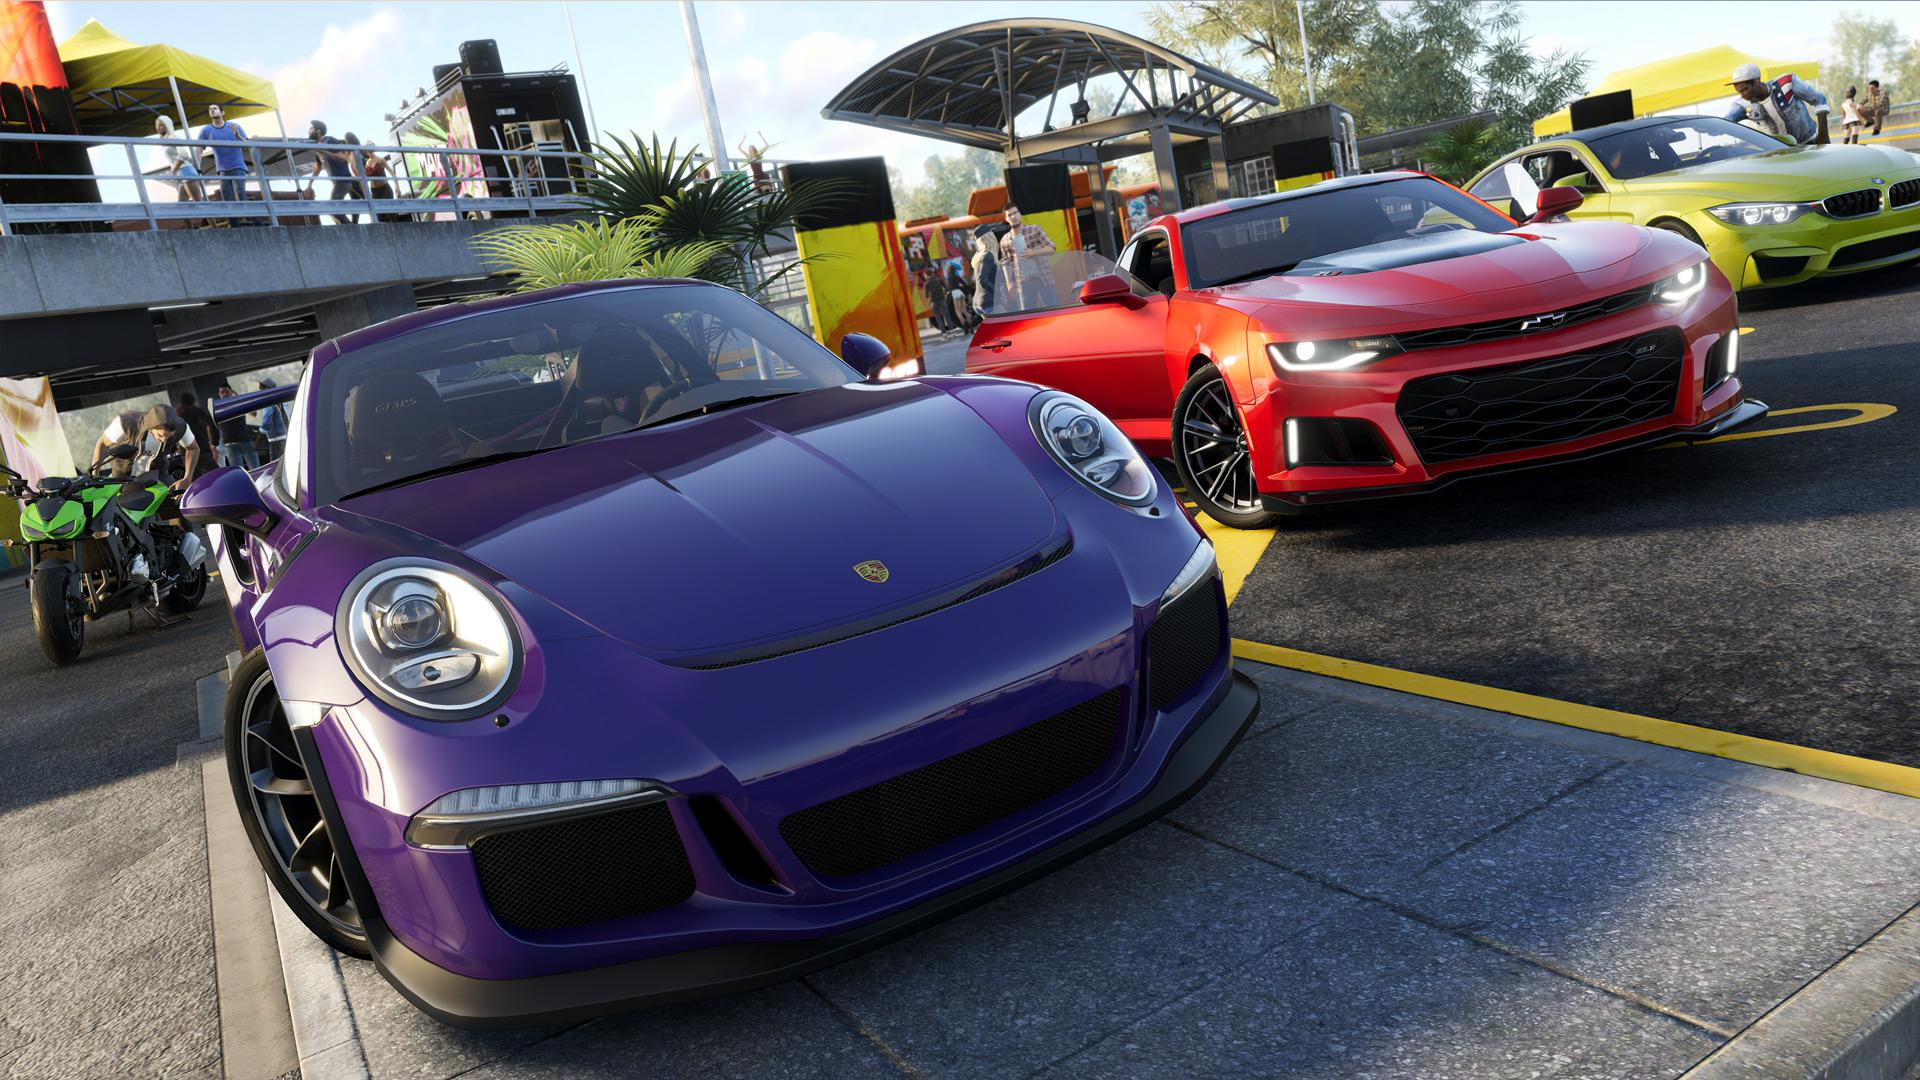 The Crew 2 features loads of fully licensed cars – all with different characteristics and handling